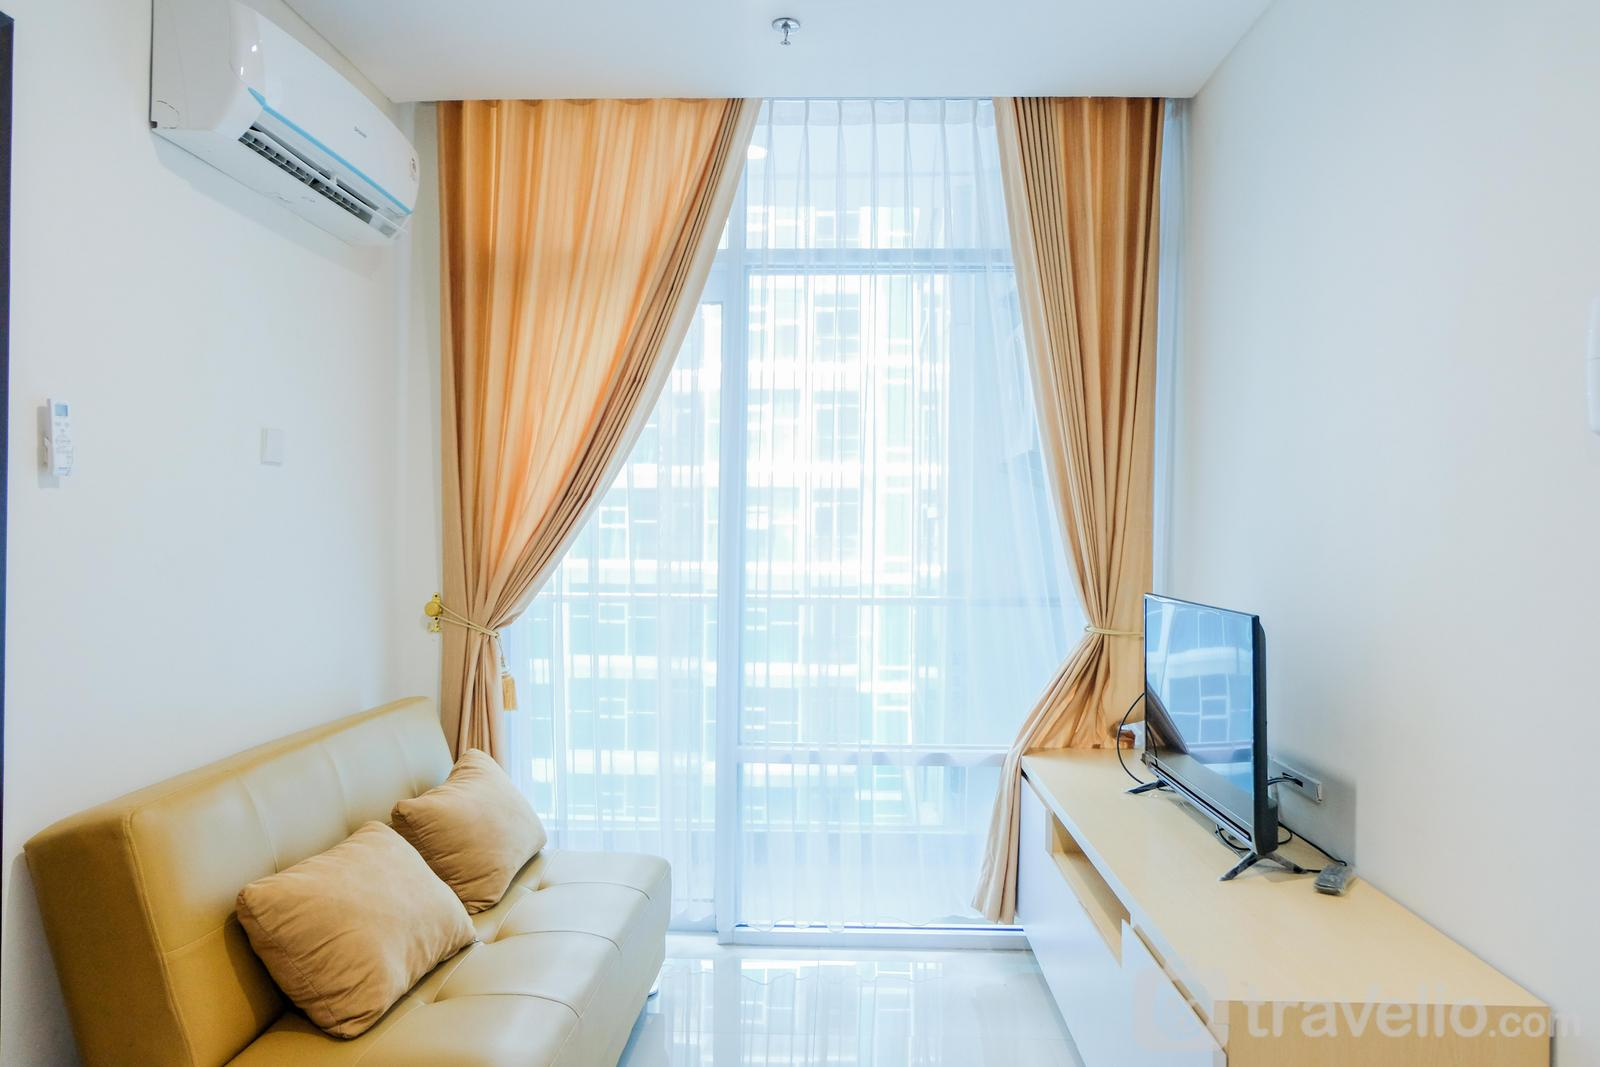 Brooklyn Apartment Alam Sutera - Great Choice 1BR Brooklyn Alam Sutera Apartment By Travelio